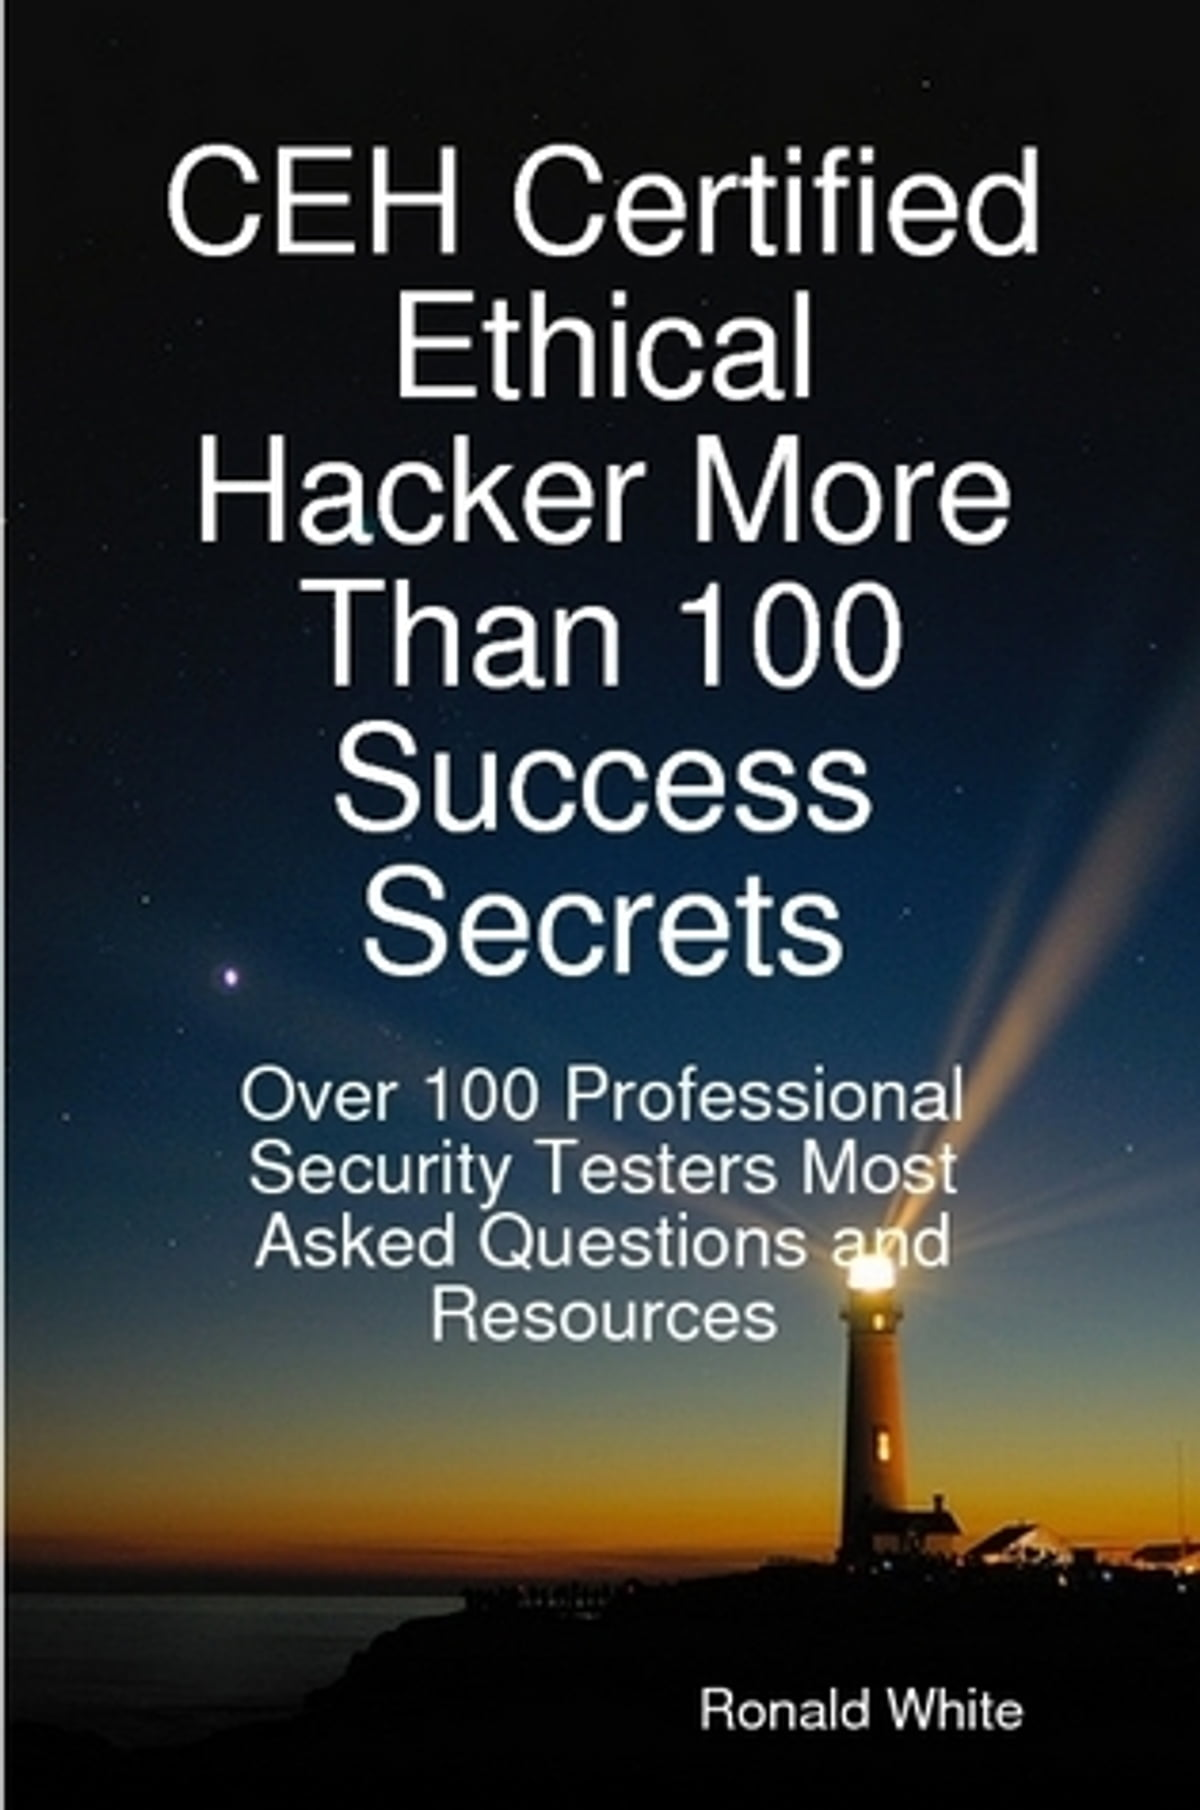 Ceh certified ethical hacker more than 100 success secrets over ceh certified ethical hacker more than 100 success secrets over 100 professional security testers most asked questions and resources ebook by ronald white 1betcityfo Images